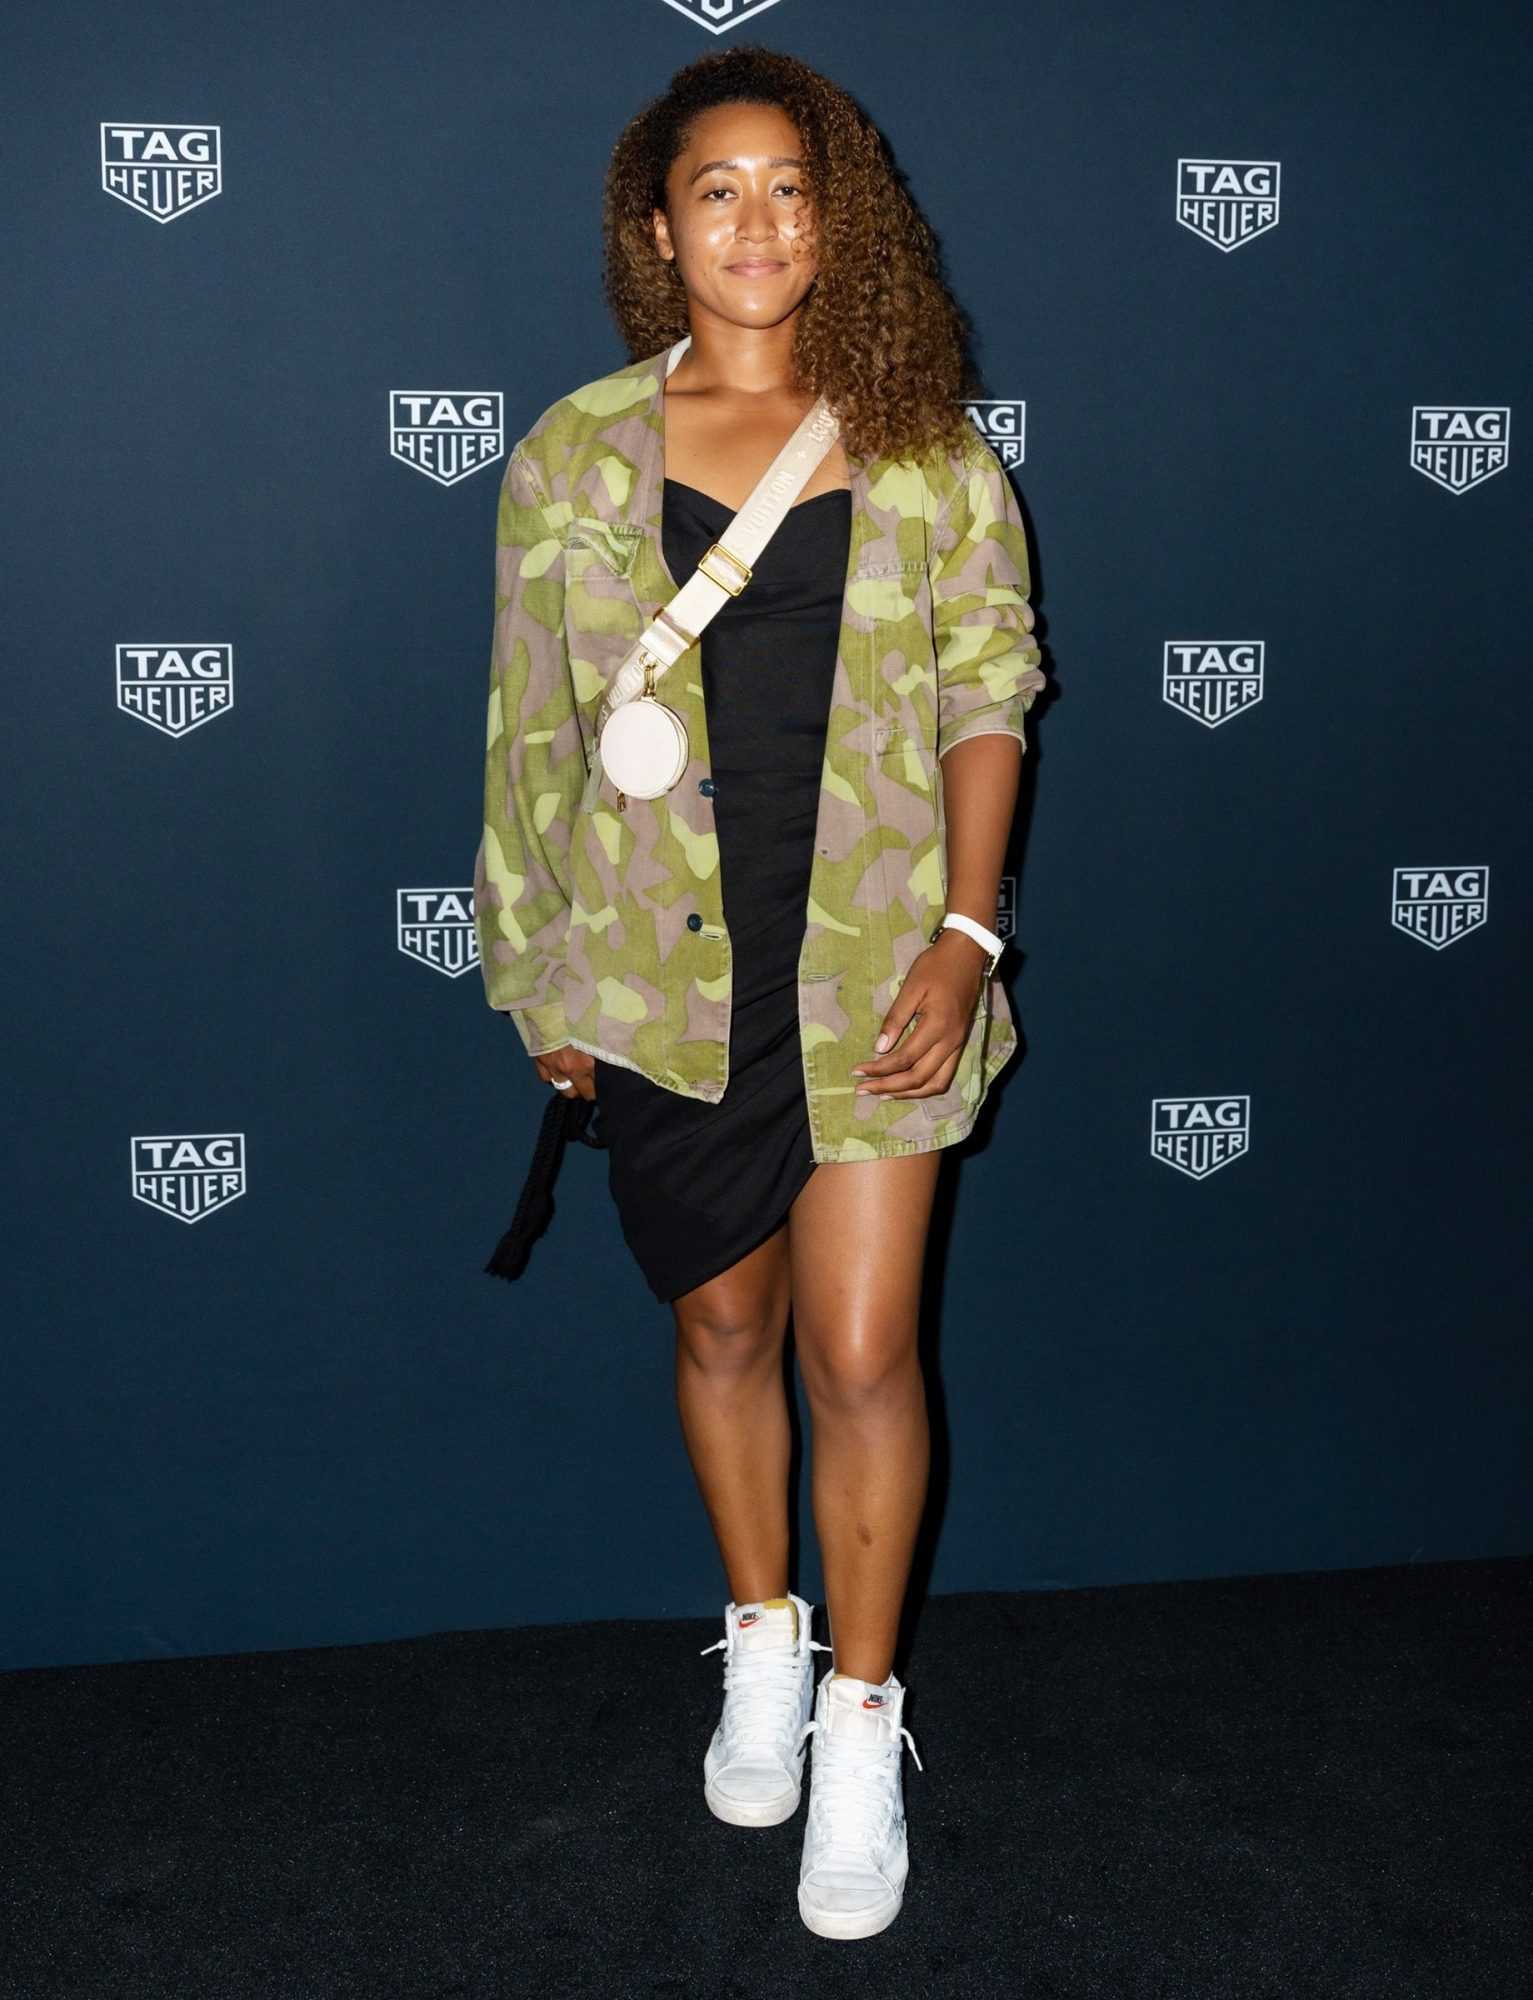 Naomi Osaka attends as TAG Heuer Celebrates Naomi Osaka and Tennis Family at Mr. Purple on August 26, 2021 in New York City.